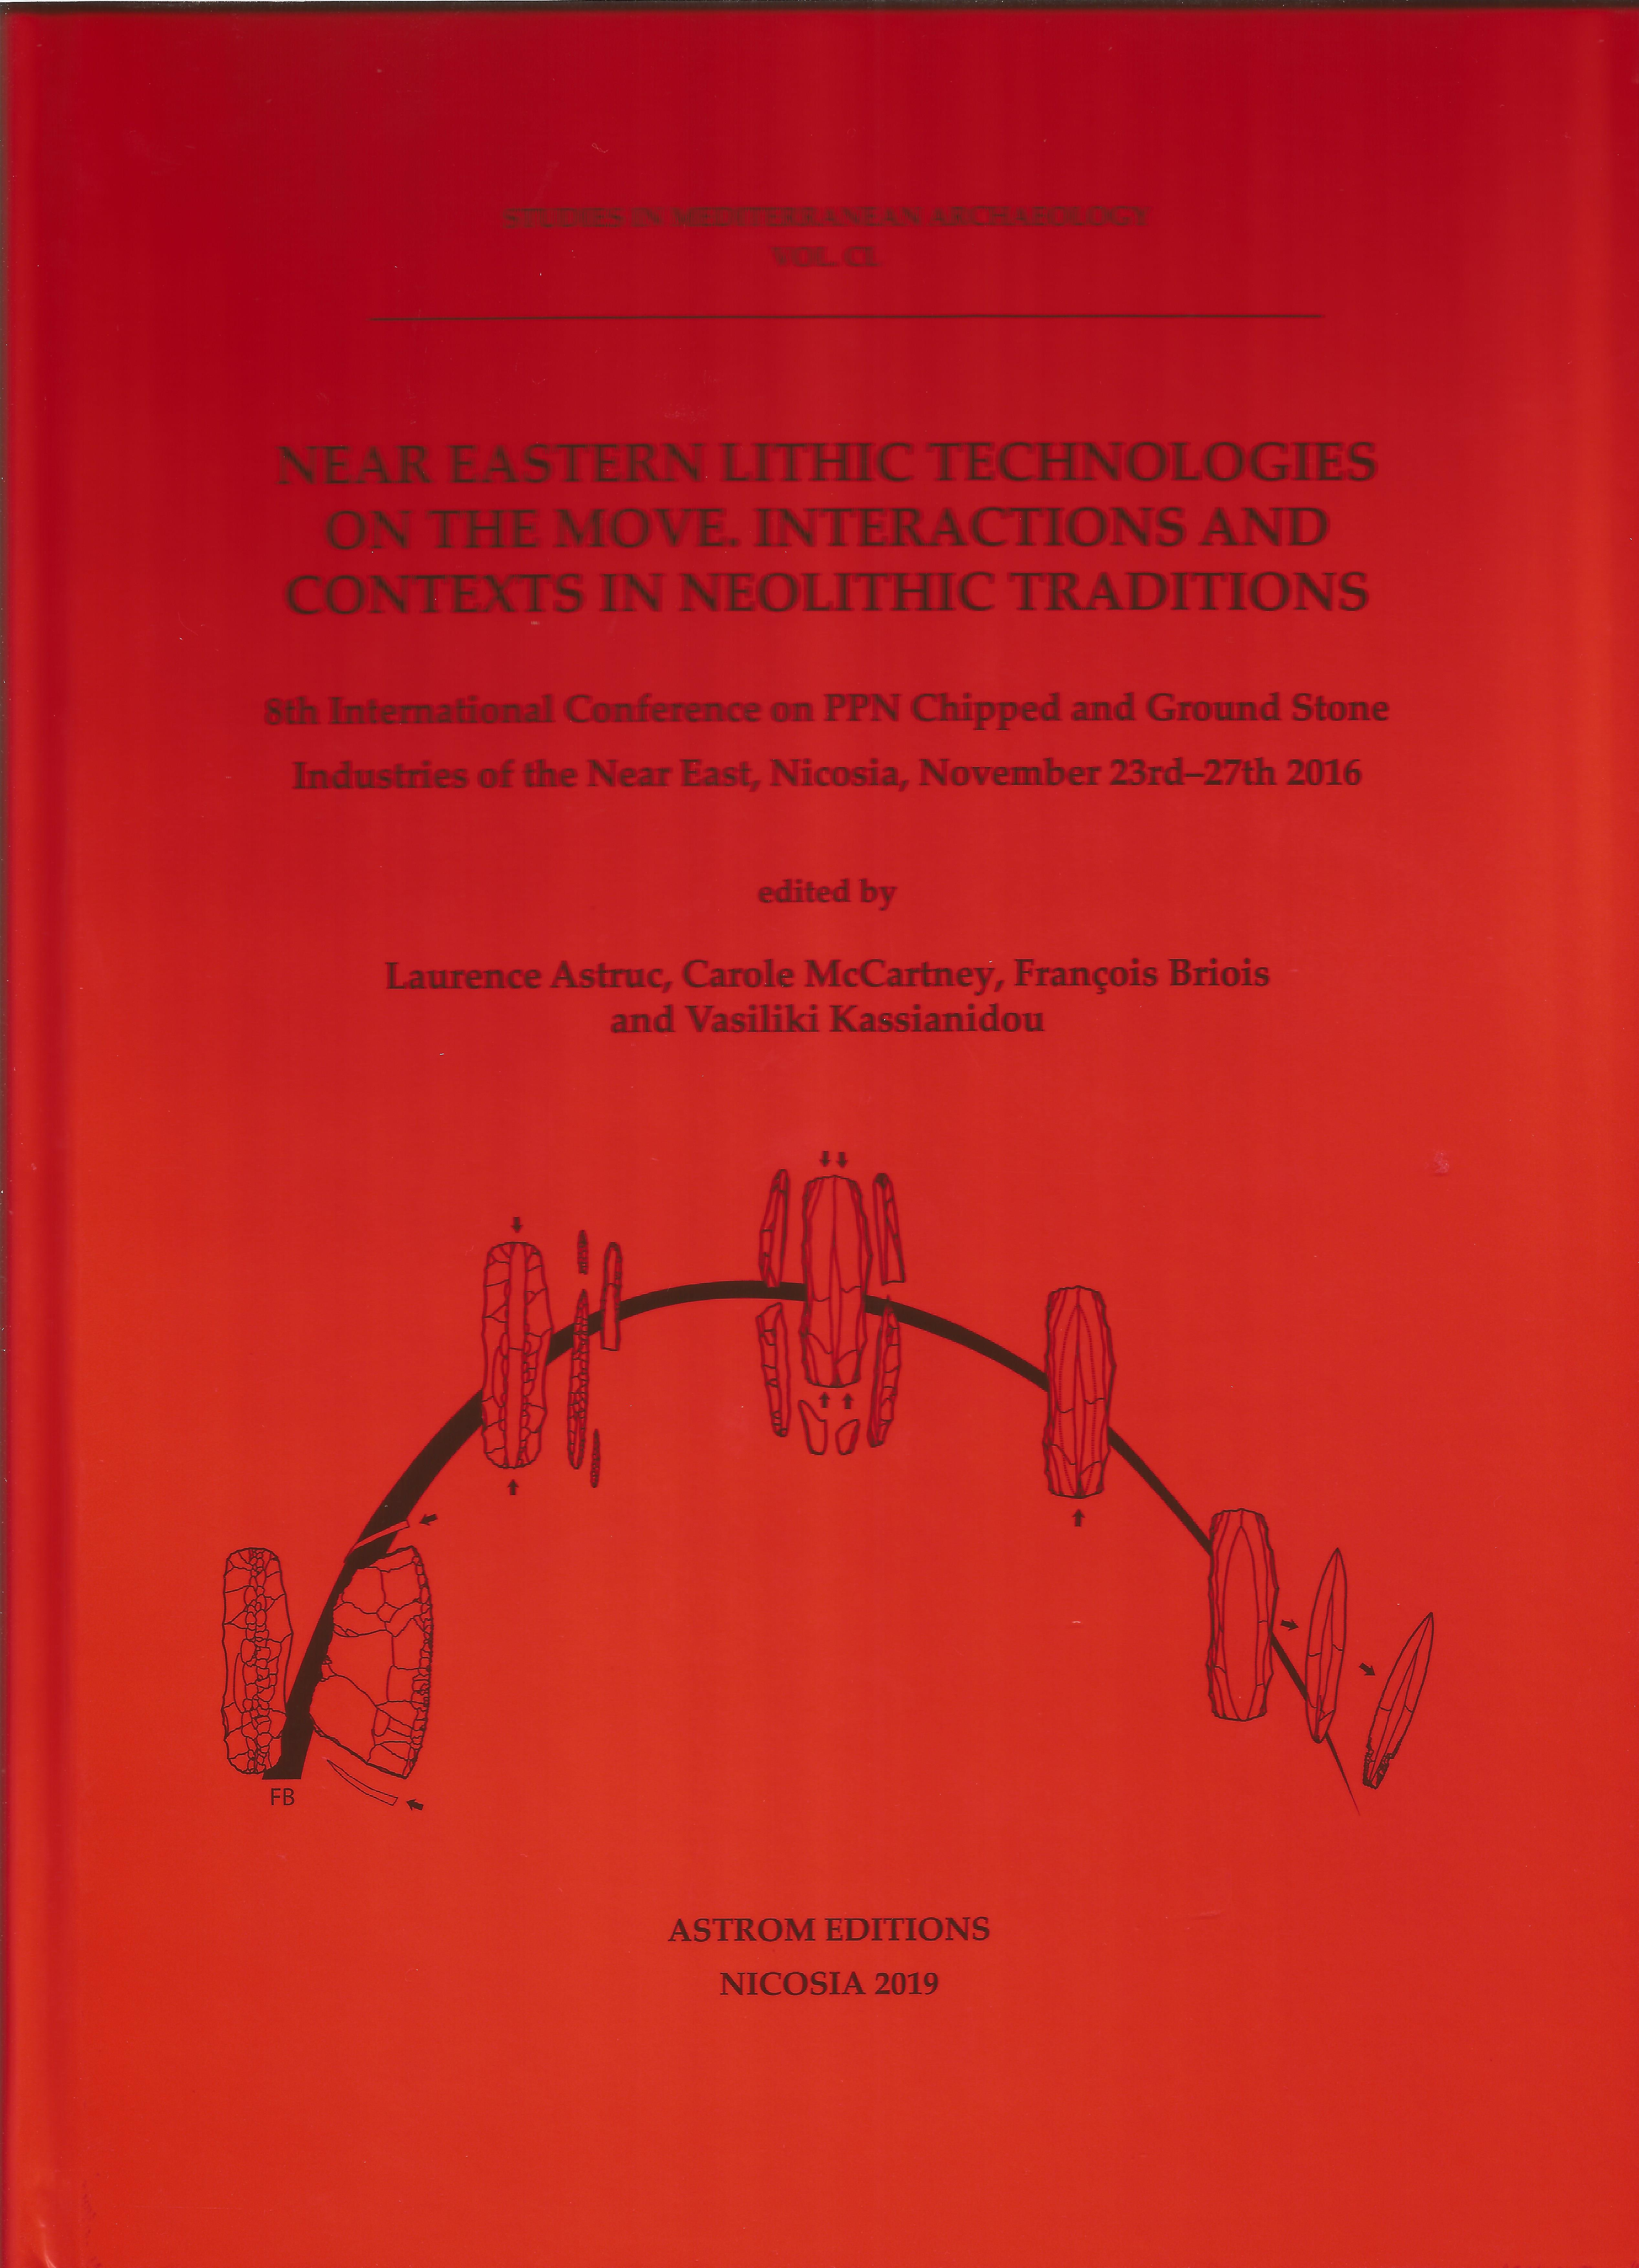 [Near Eastern Lithic Technologies on the Move. Interactions and Contexts in Neolithic Traditions.]